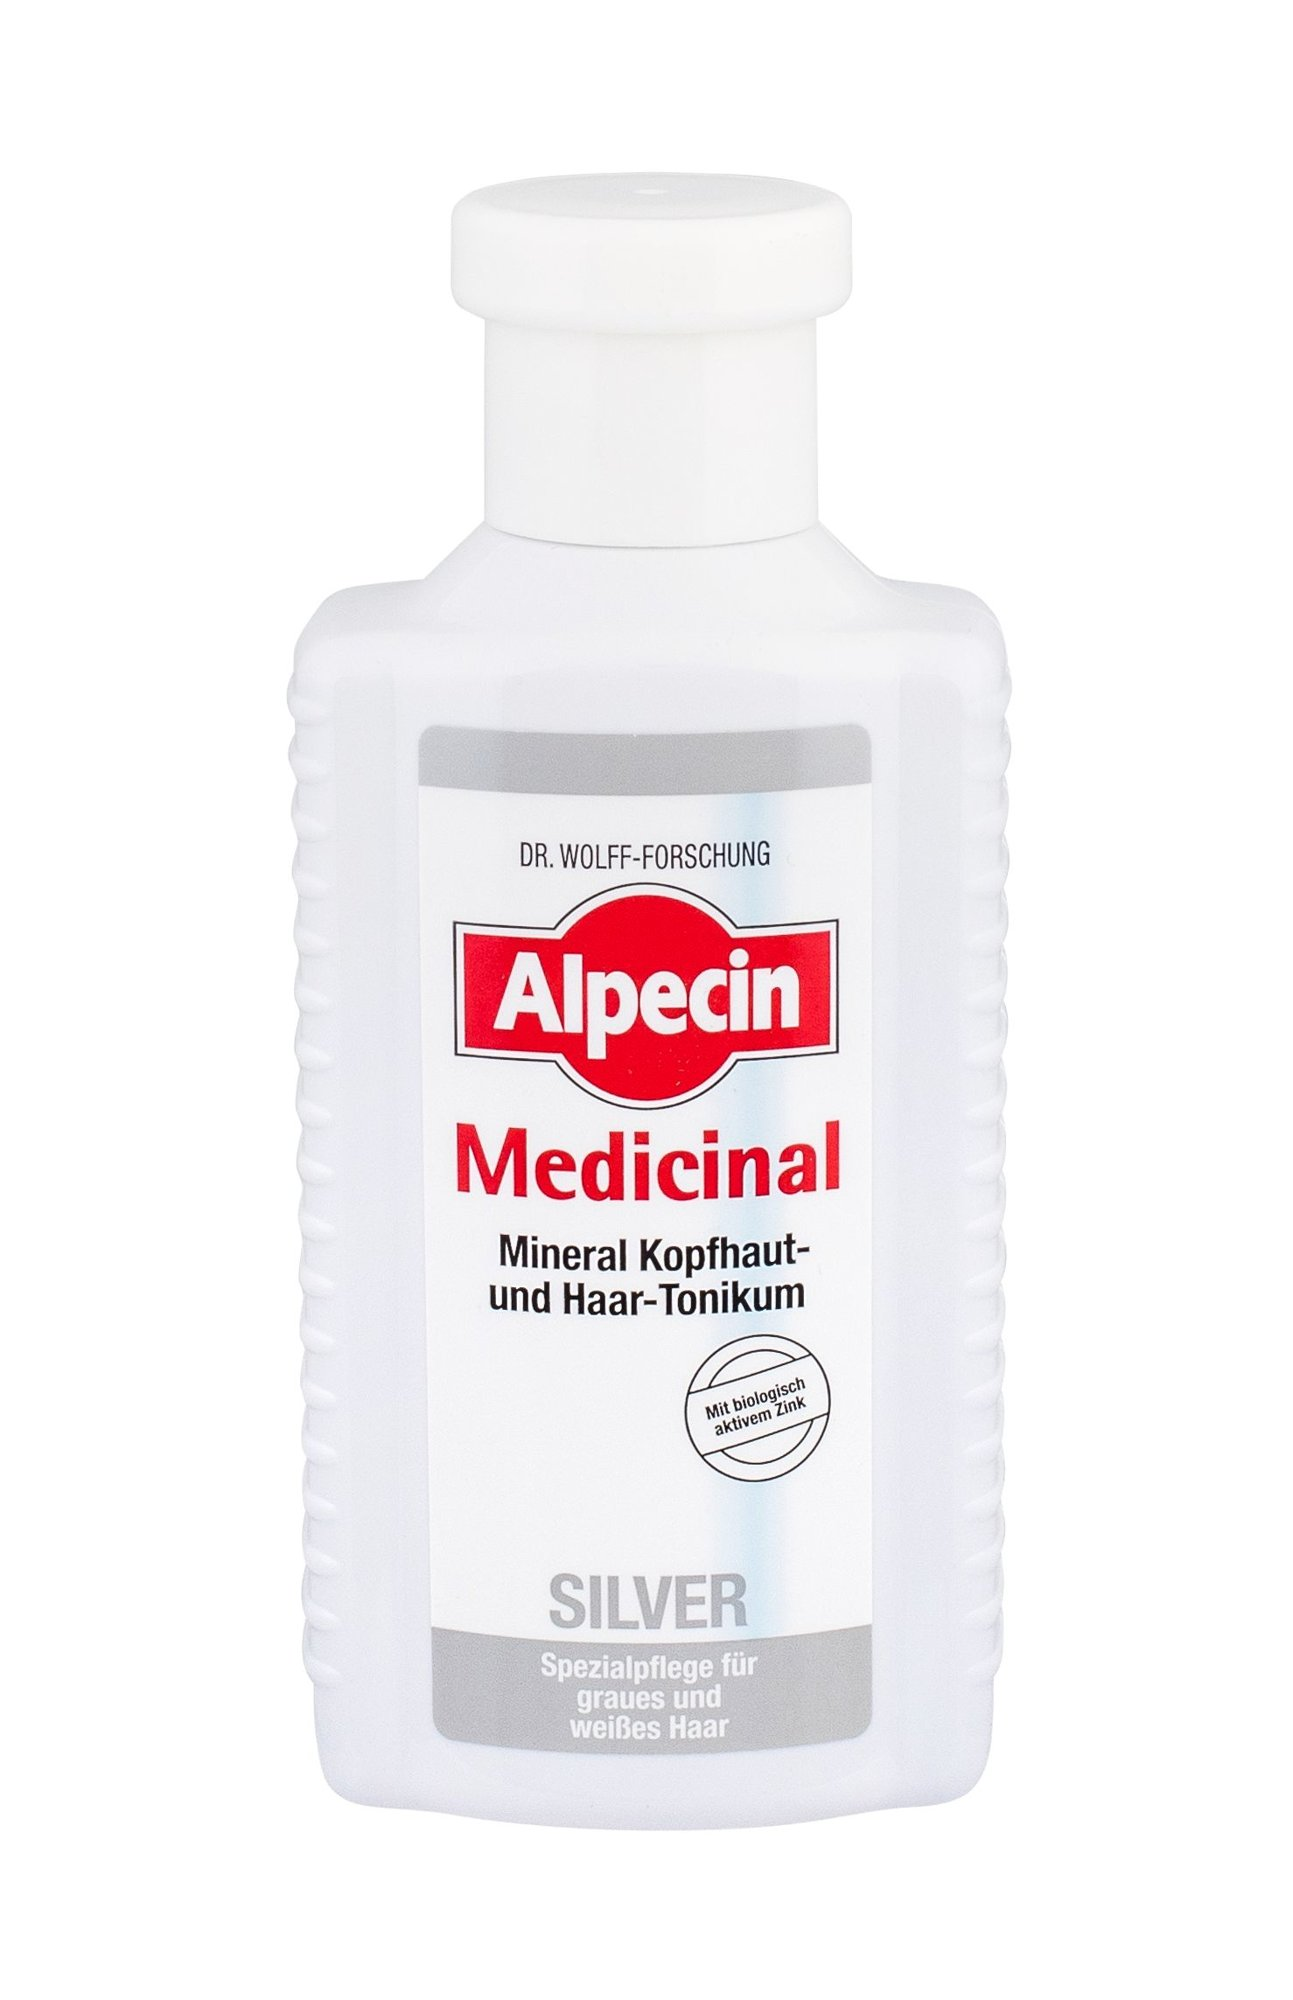 Alpecin Medicinal Silver Cosmetic 200ml  Mineral Scalp & Hair Tonic